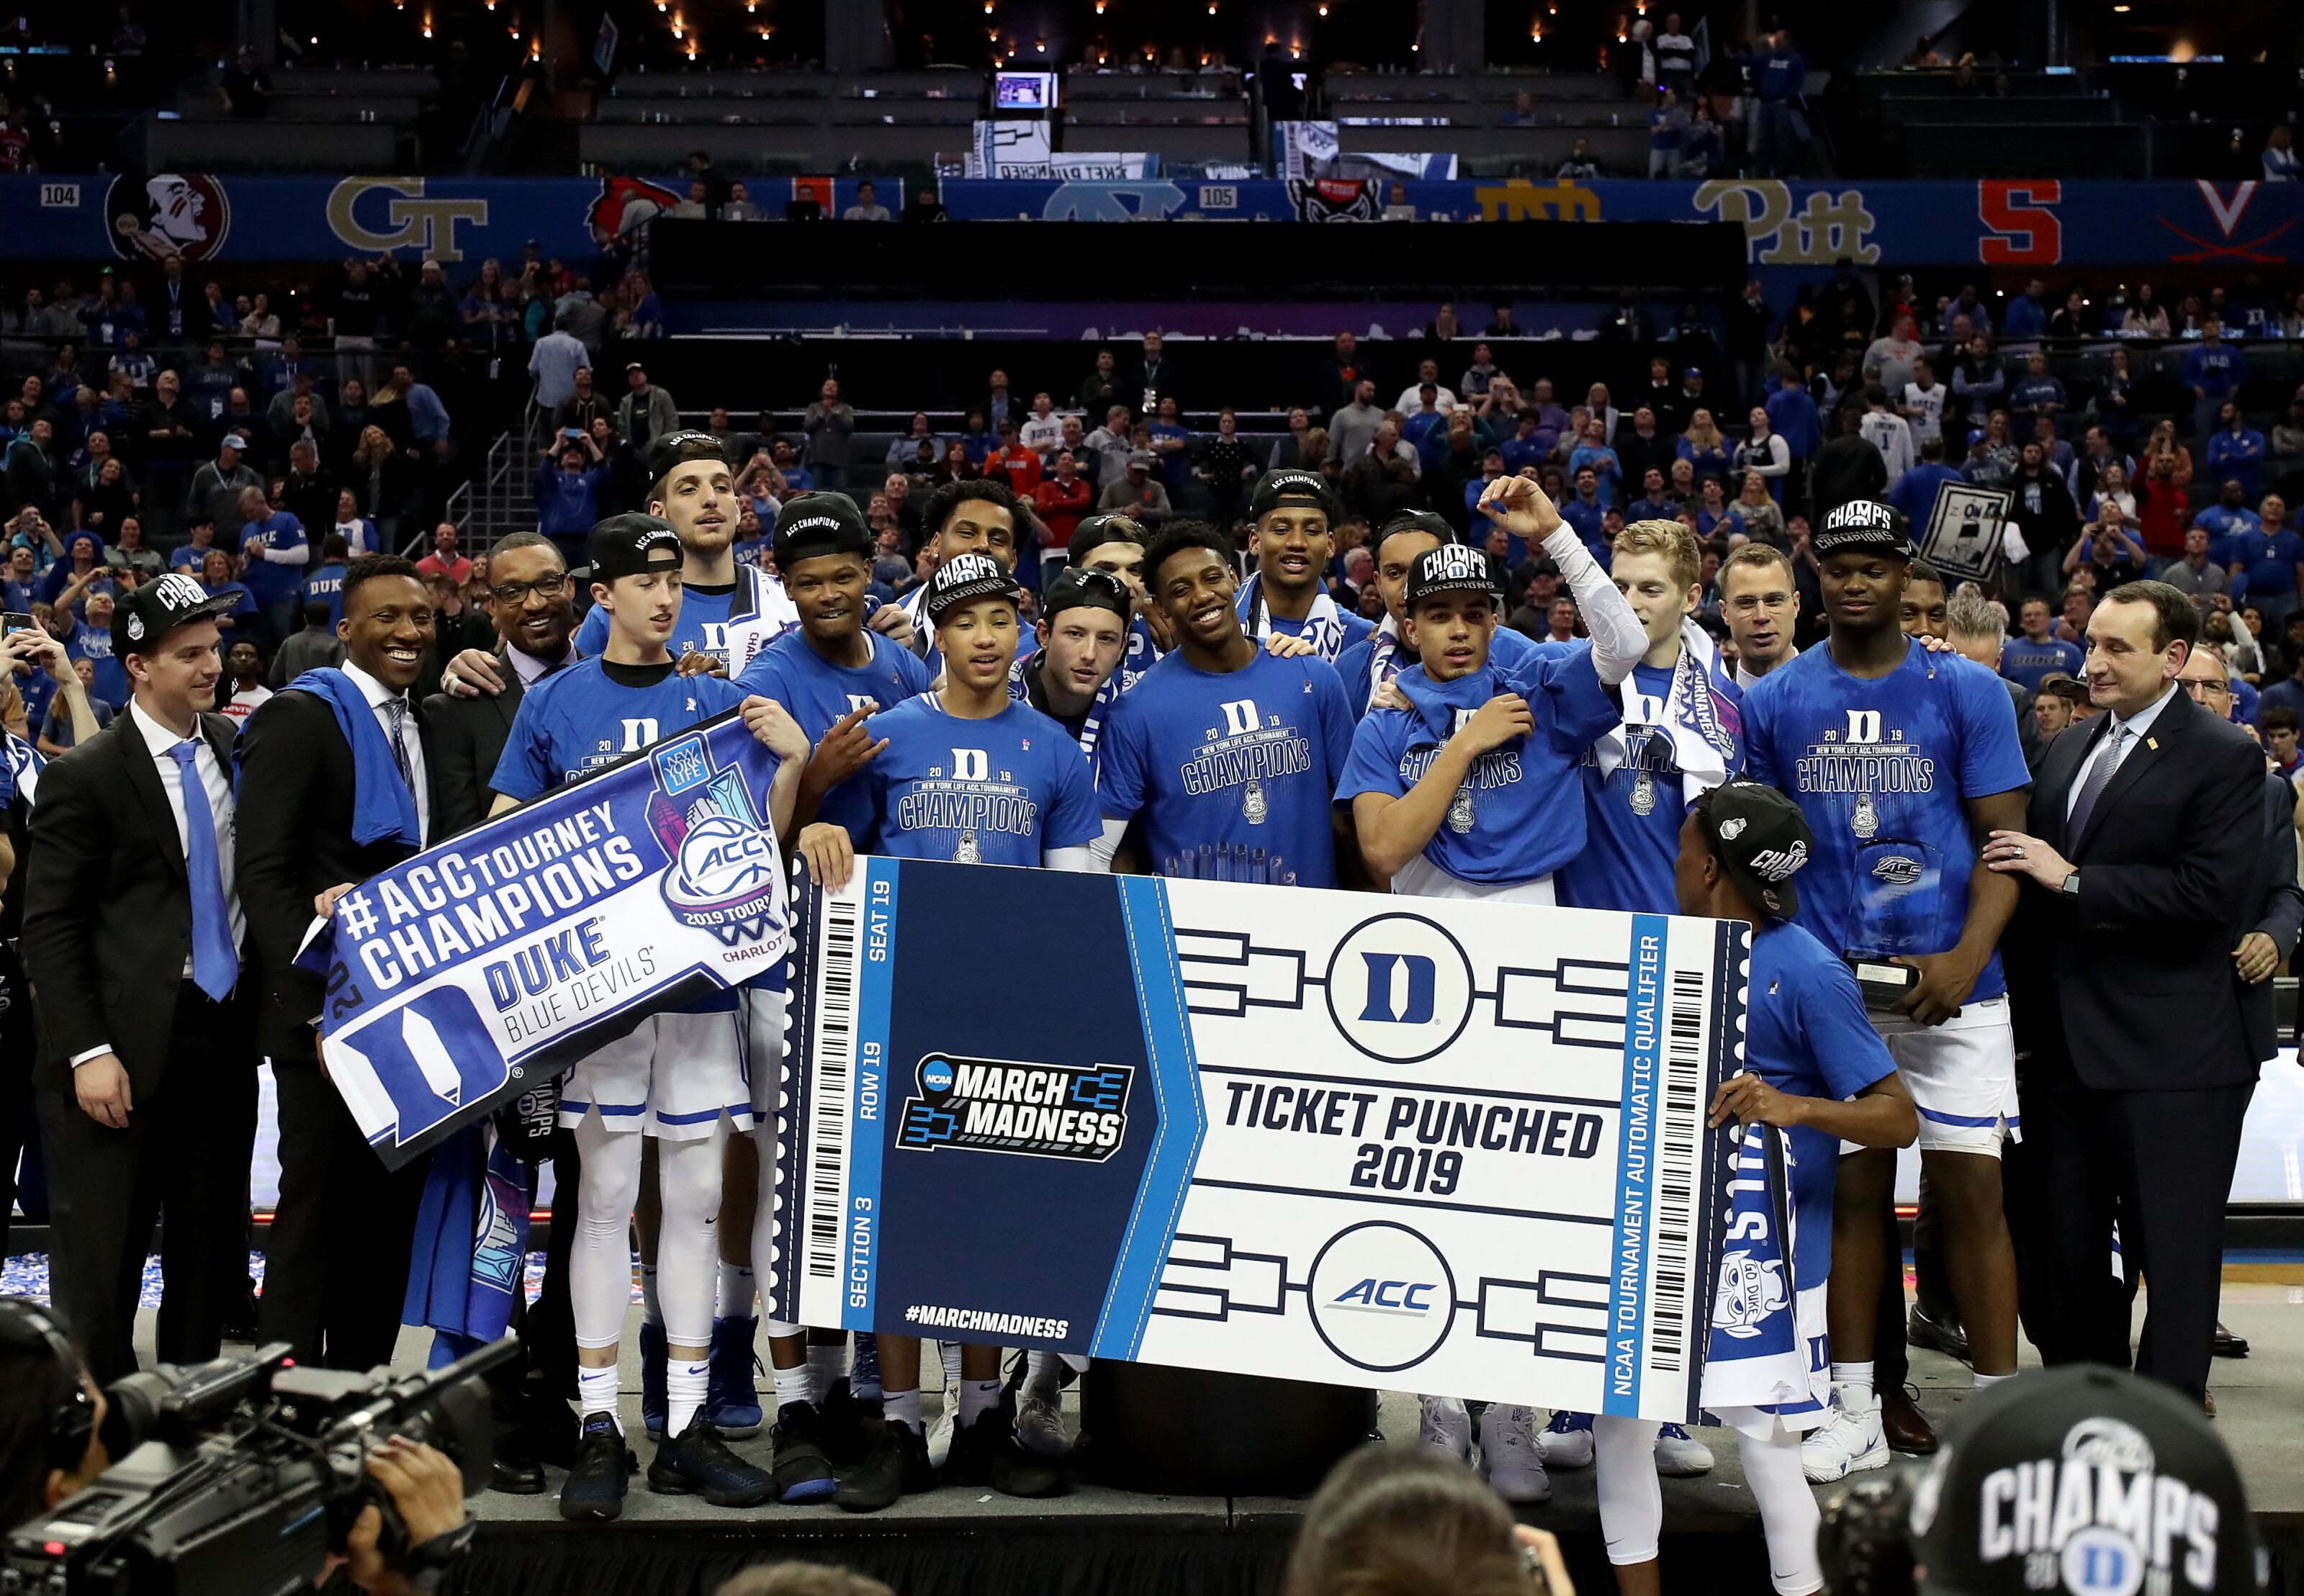 Duke Basketball: Blue Devils are No. 1 overall seed in NCAA Tournament